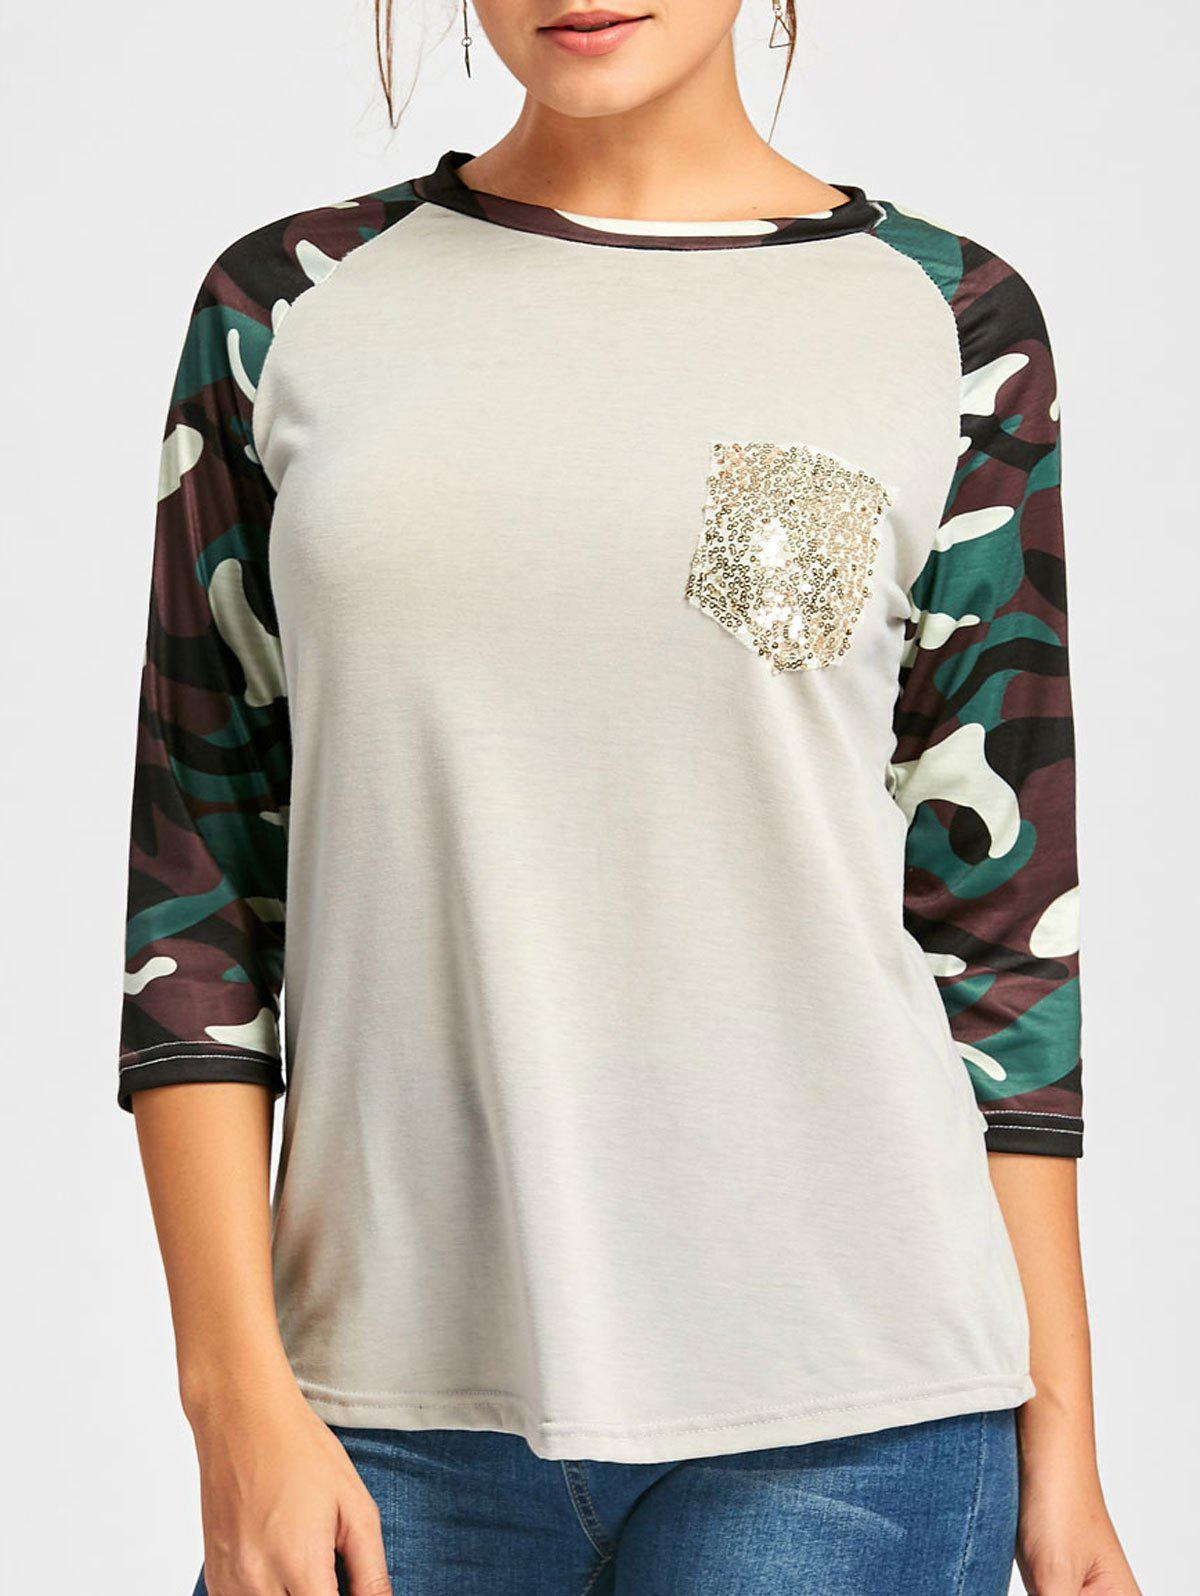 Raglan Sleeve Camo Sequin Pocket Tee - LIGHT GRAY XL